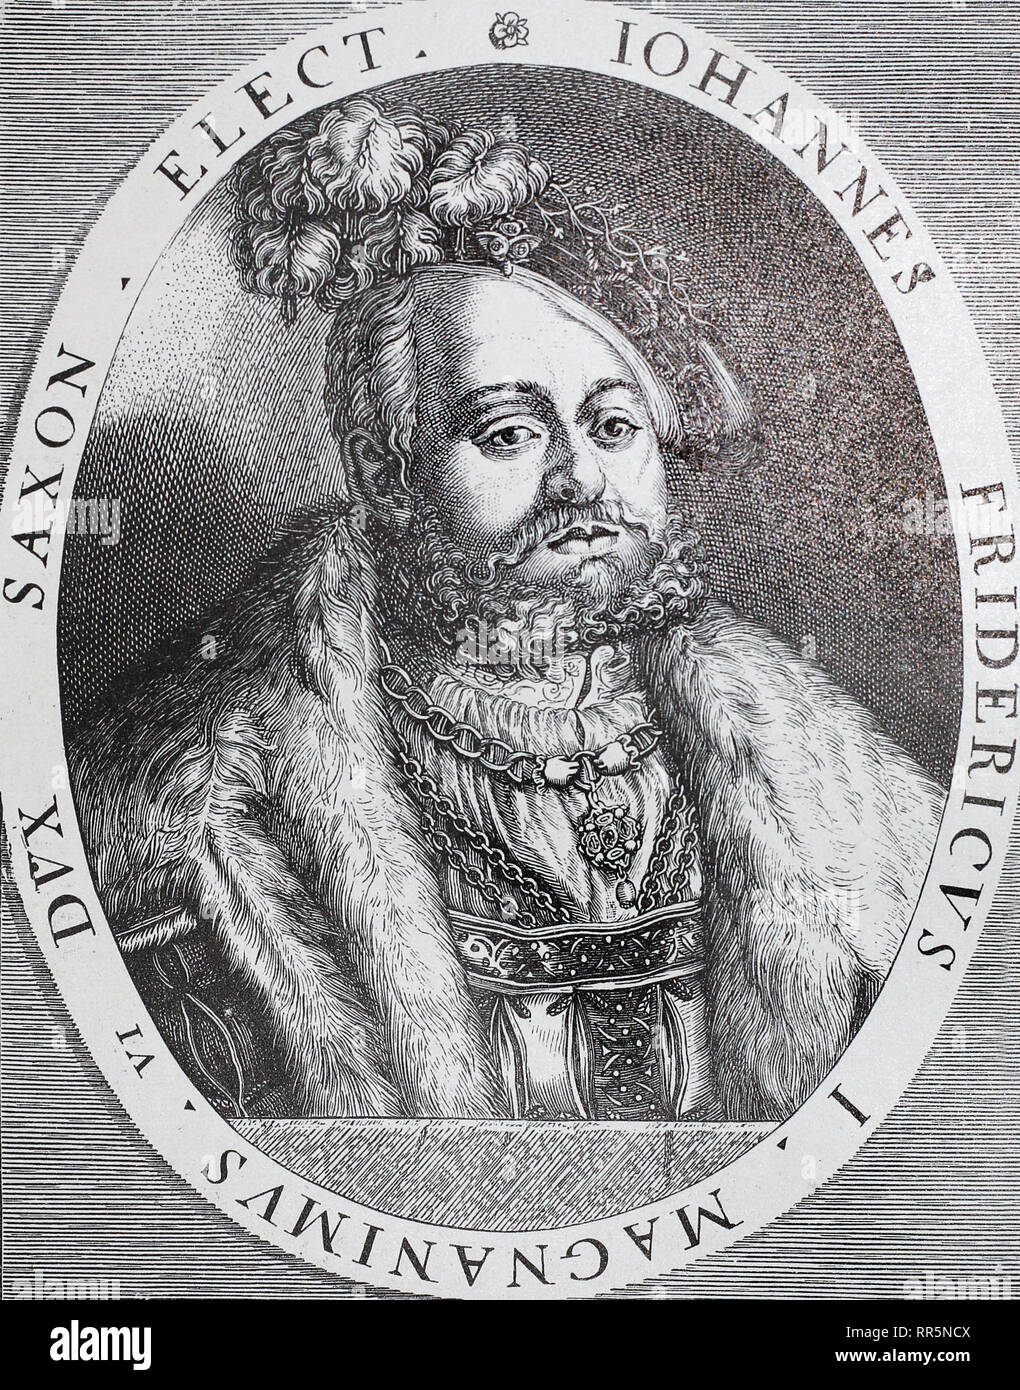 Elector of Saxony Johann-Friedrich the Magnanimous. Medieval engraving. Stock Photo